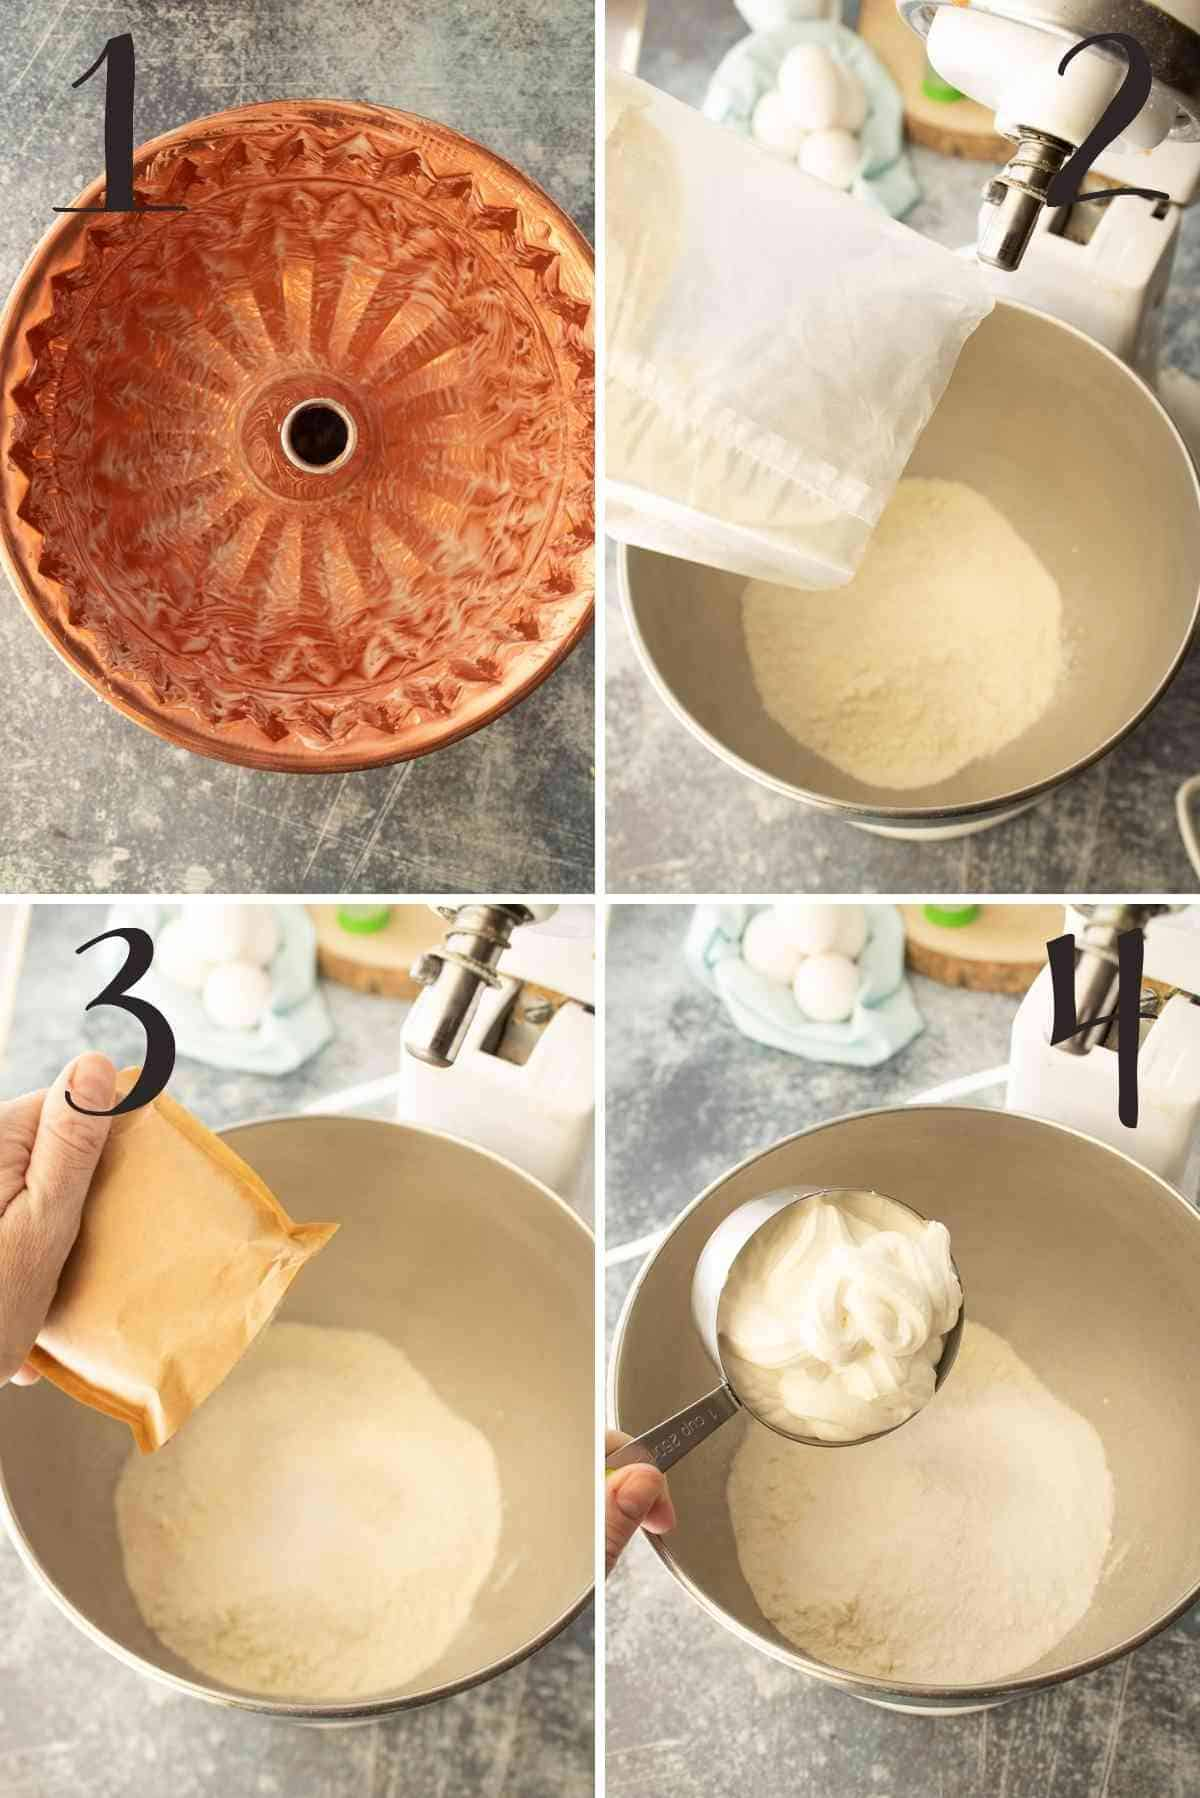 Greased bundt pan. Cake mix, pudding mix and sour cream added to a mixing bowl.